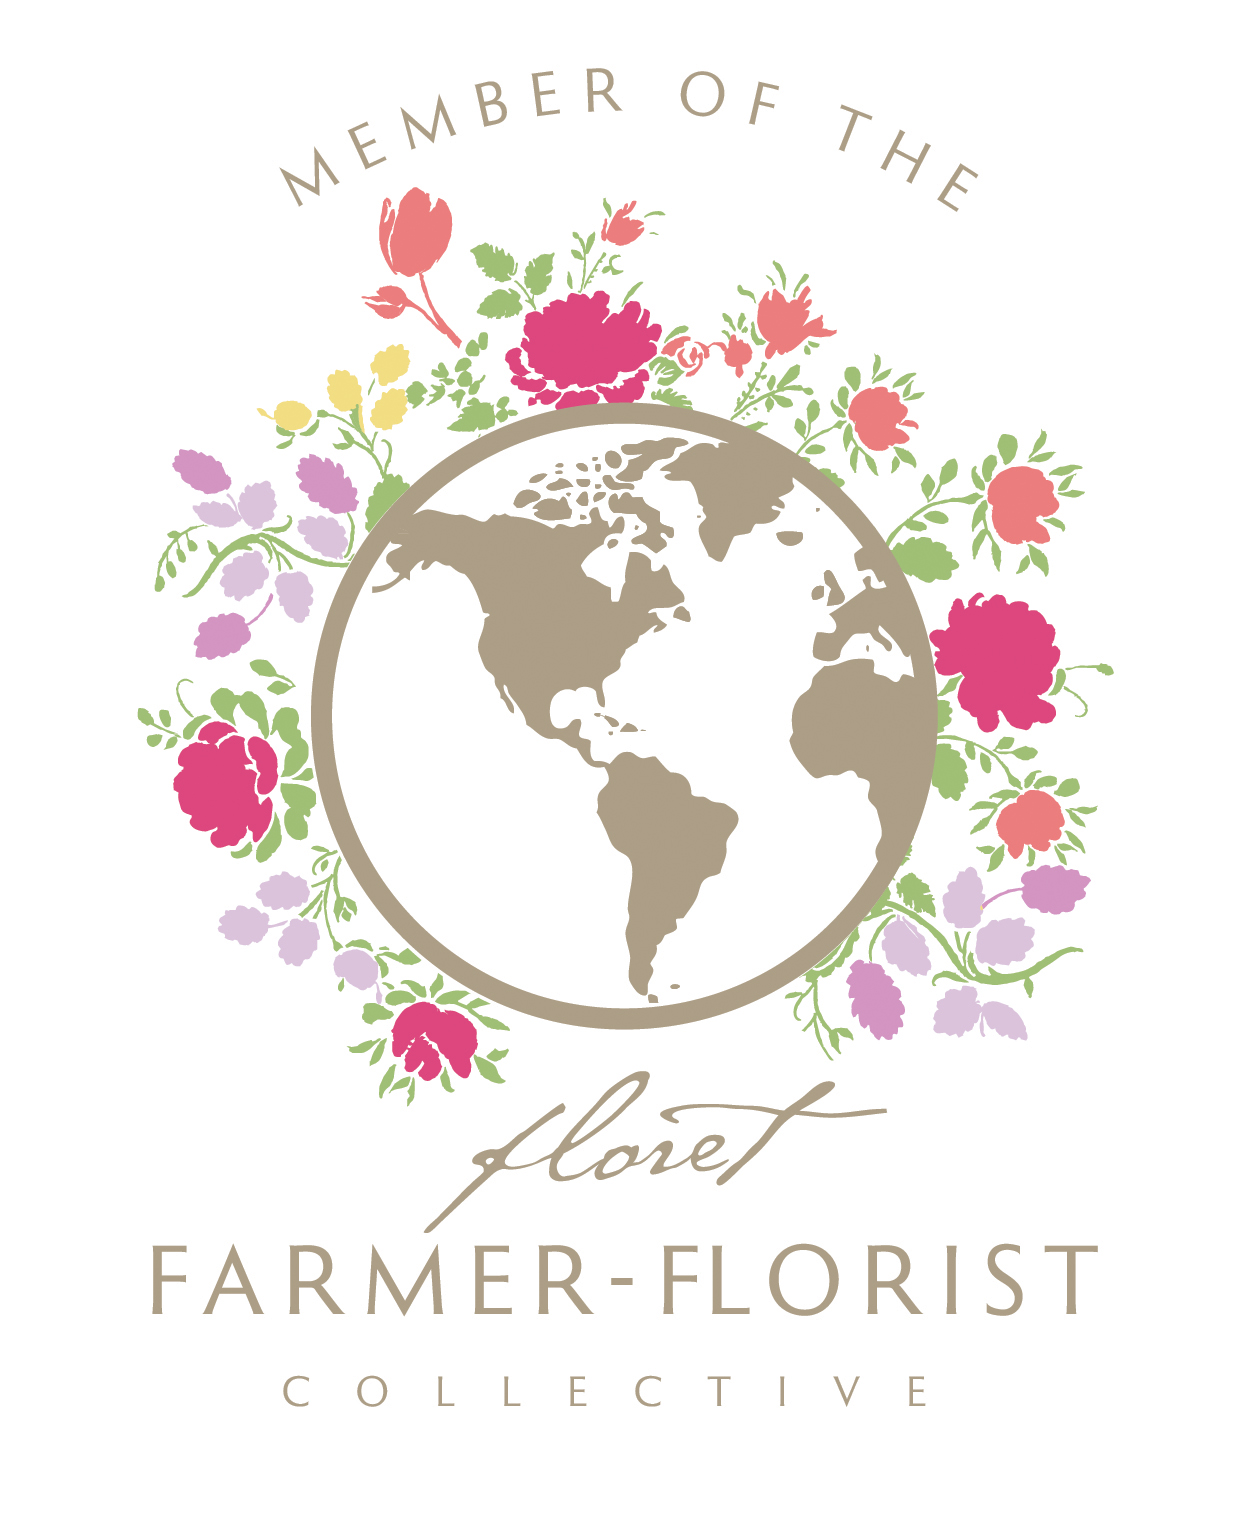 - Established in 2008, the Floret Flowers Collective is a flower movement and an inclusive global directory committed to growing, buying and promoting local flowers. Although separated by many miles, we are kindred spirits united in a love of local, seasonal flowers. Every member of the Collective has pledged to highlight local, seasonal flowers and use sustainable growing and business practices whenever possible. We encourage you to connect with and support these committed, passionate artisans in your community.